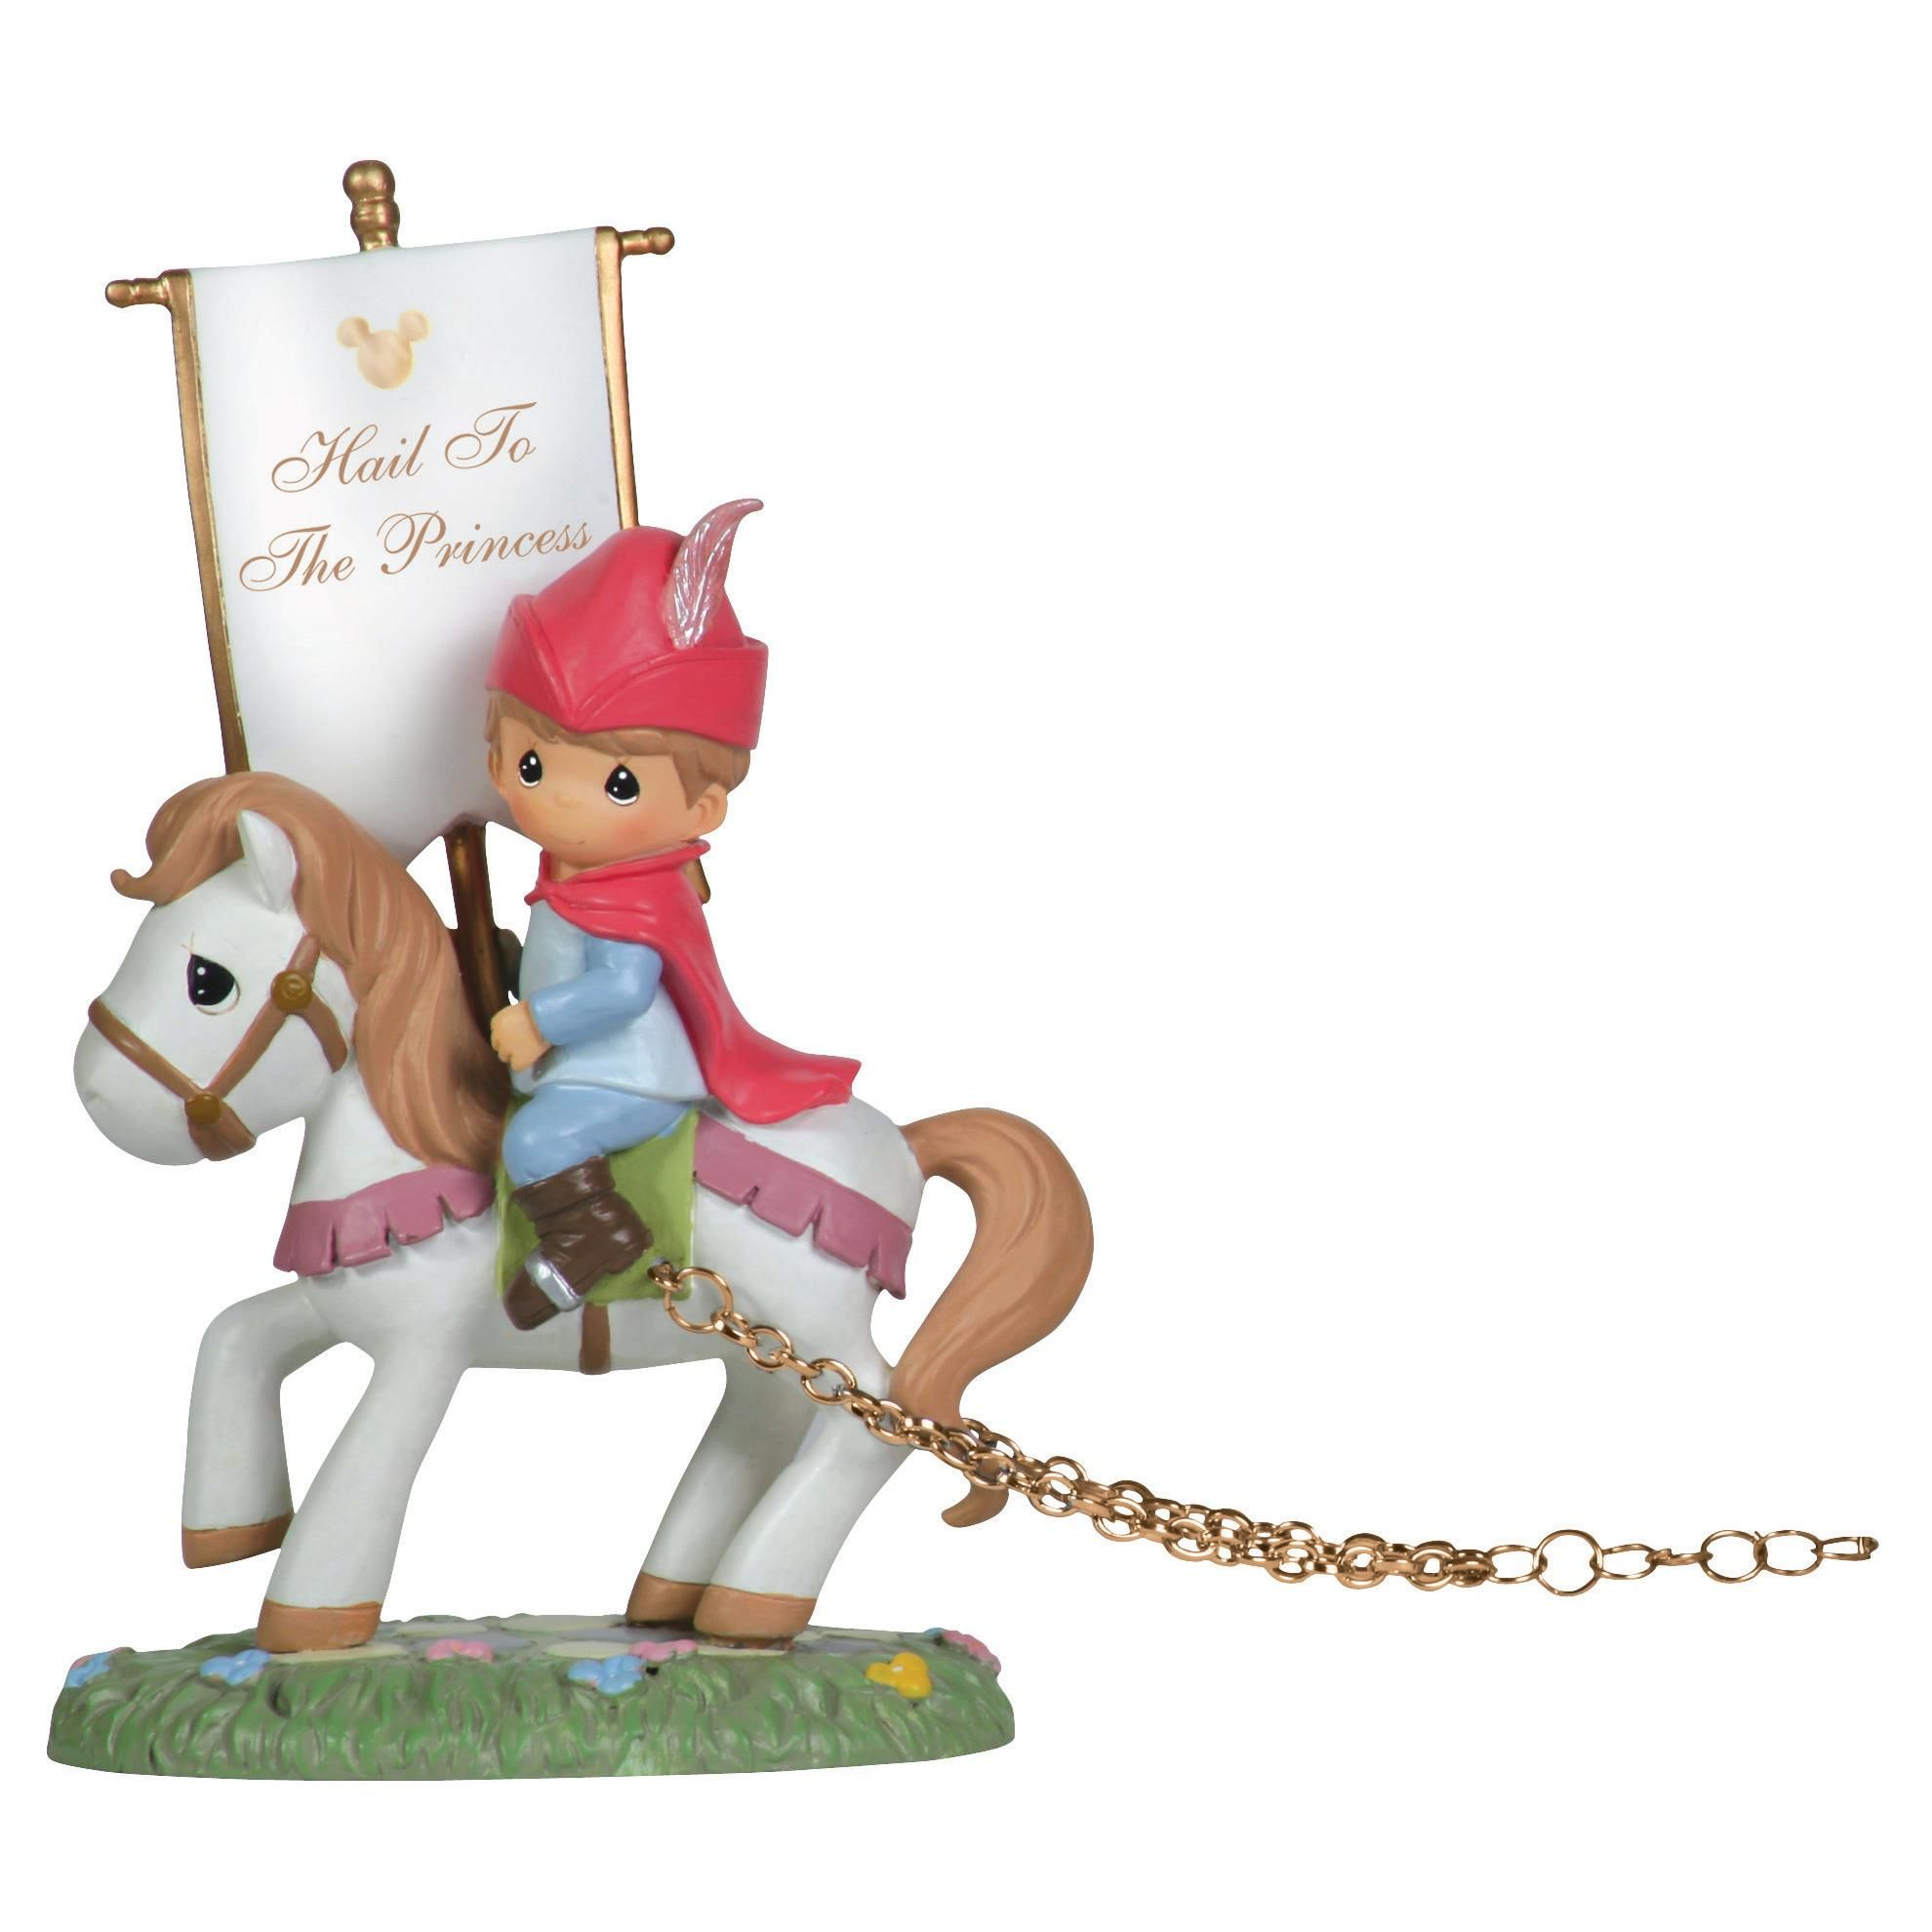 Figurine clipart concerned Riding Prince Riding Figurine His